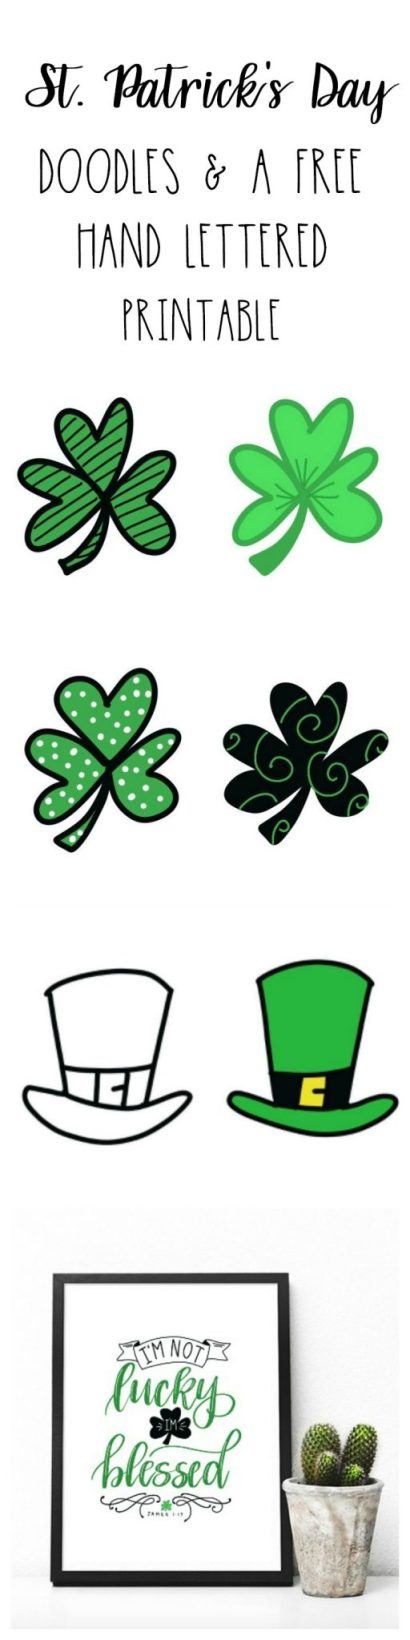 St. Patrick's Day Doodles & Printable